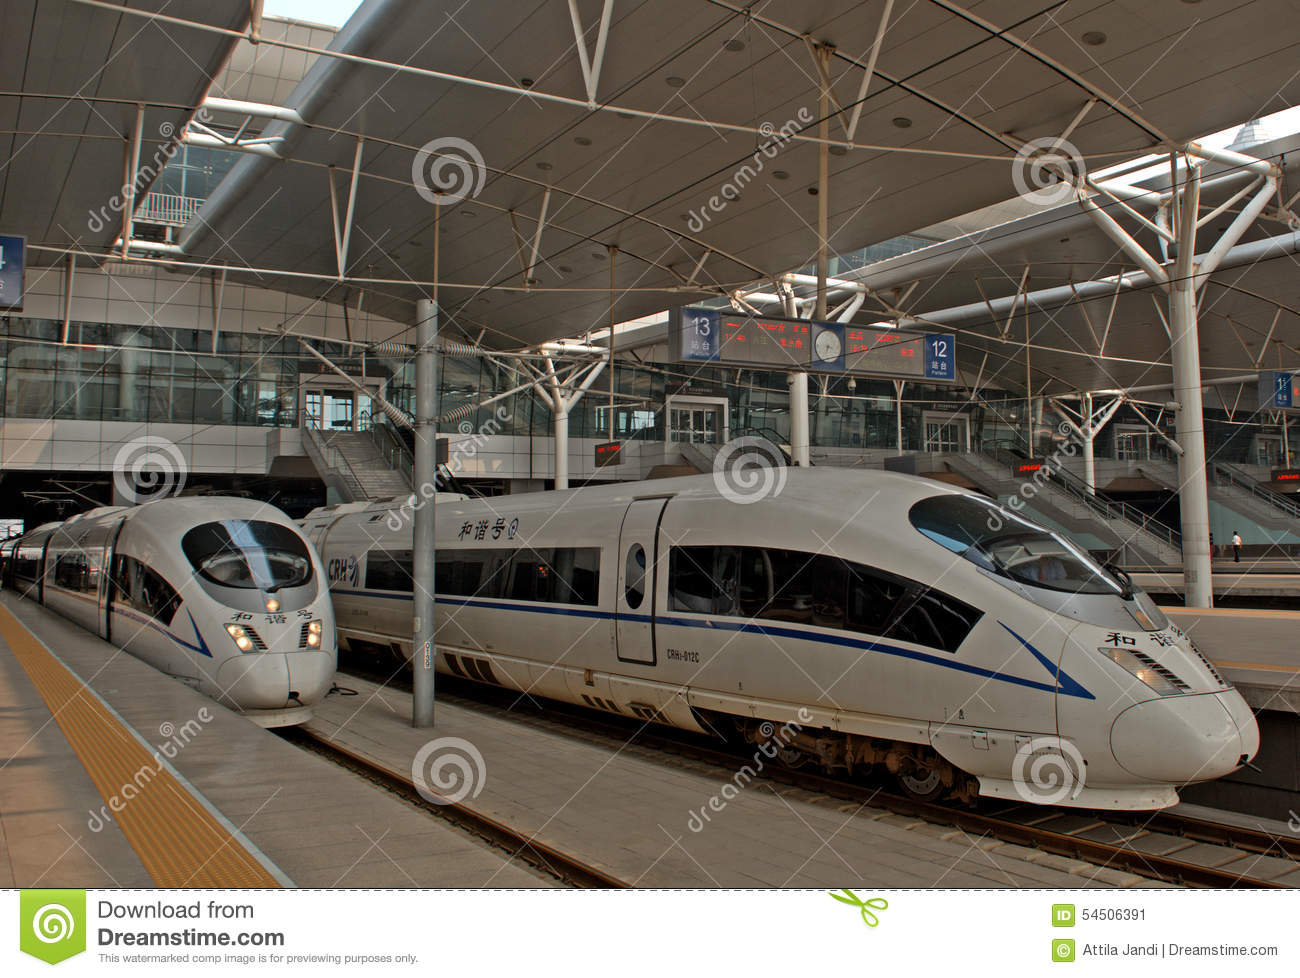 Station de train, Tianjin, Chine